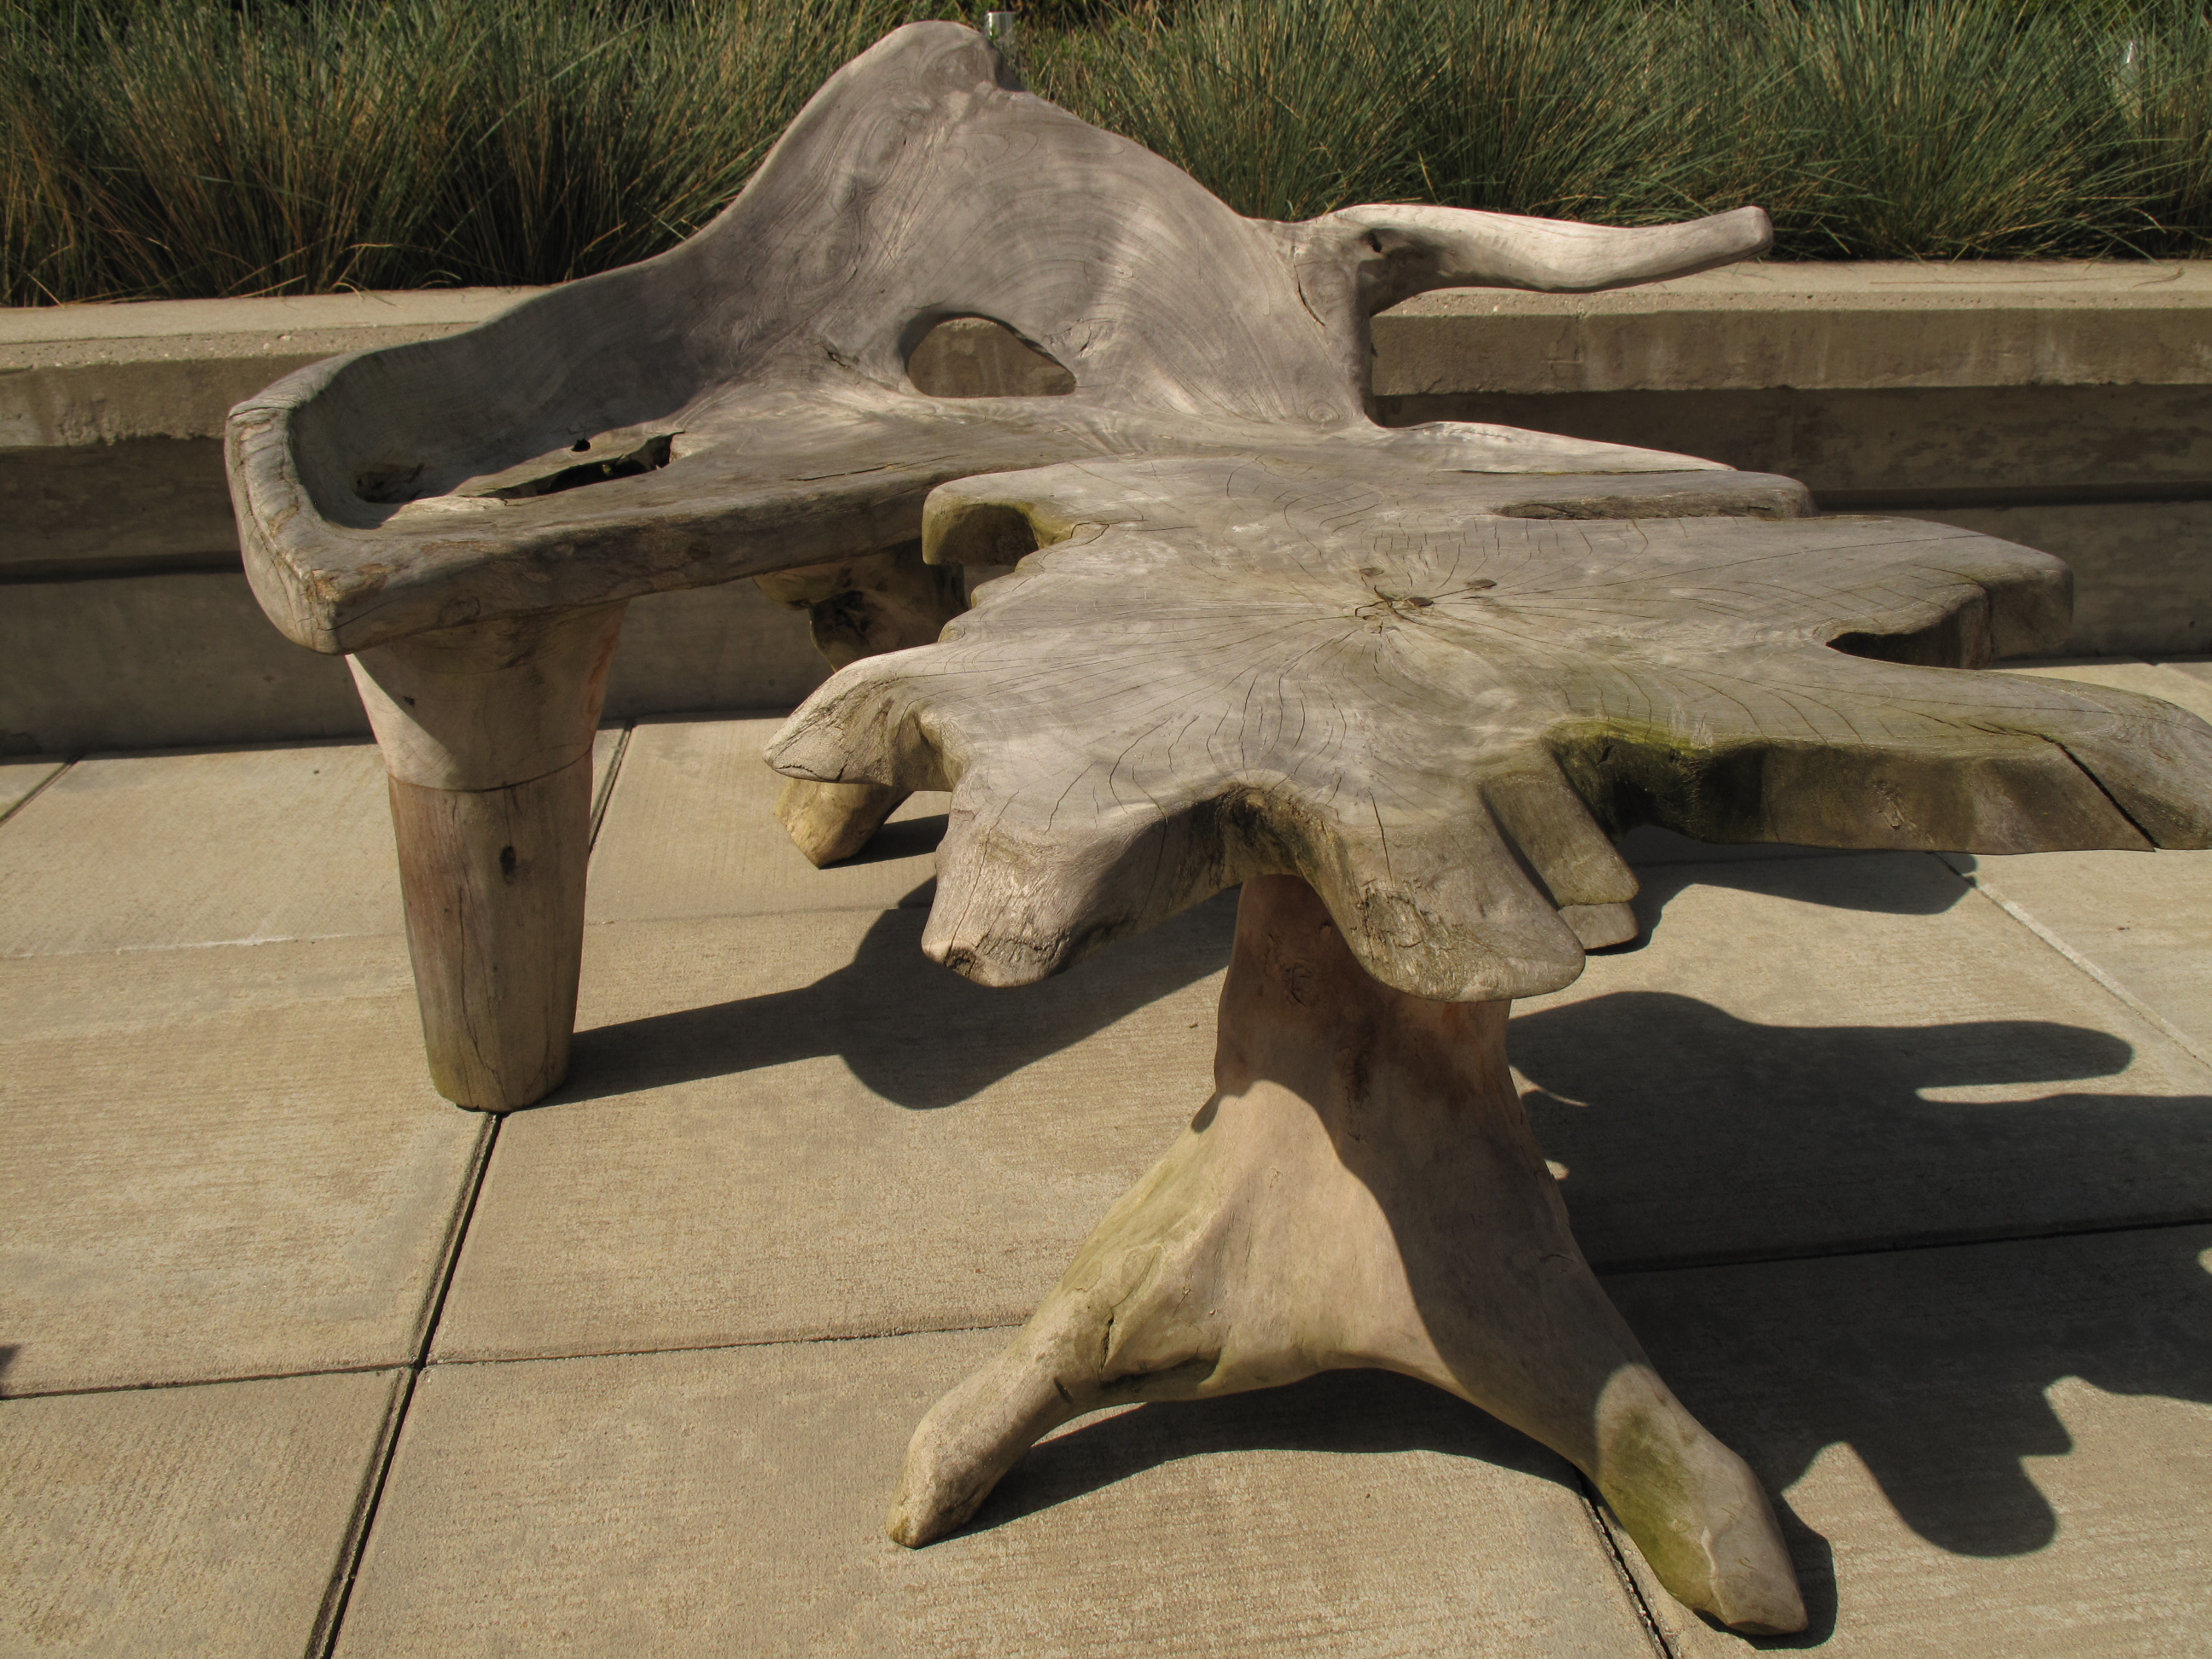 Custom Made Driftwood Chair + Ottoman/table. This Is A Fun, Whimsical Piece  That Is Hand Crafted And Very Interesting. Looks Beautiful From Different  Angles ...